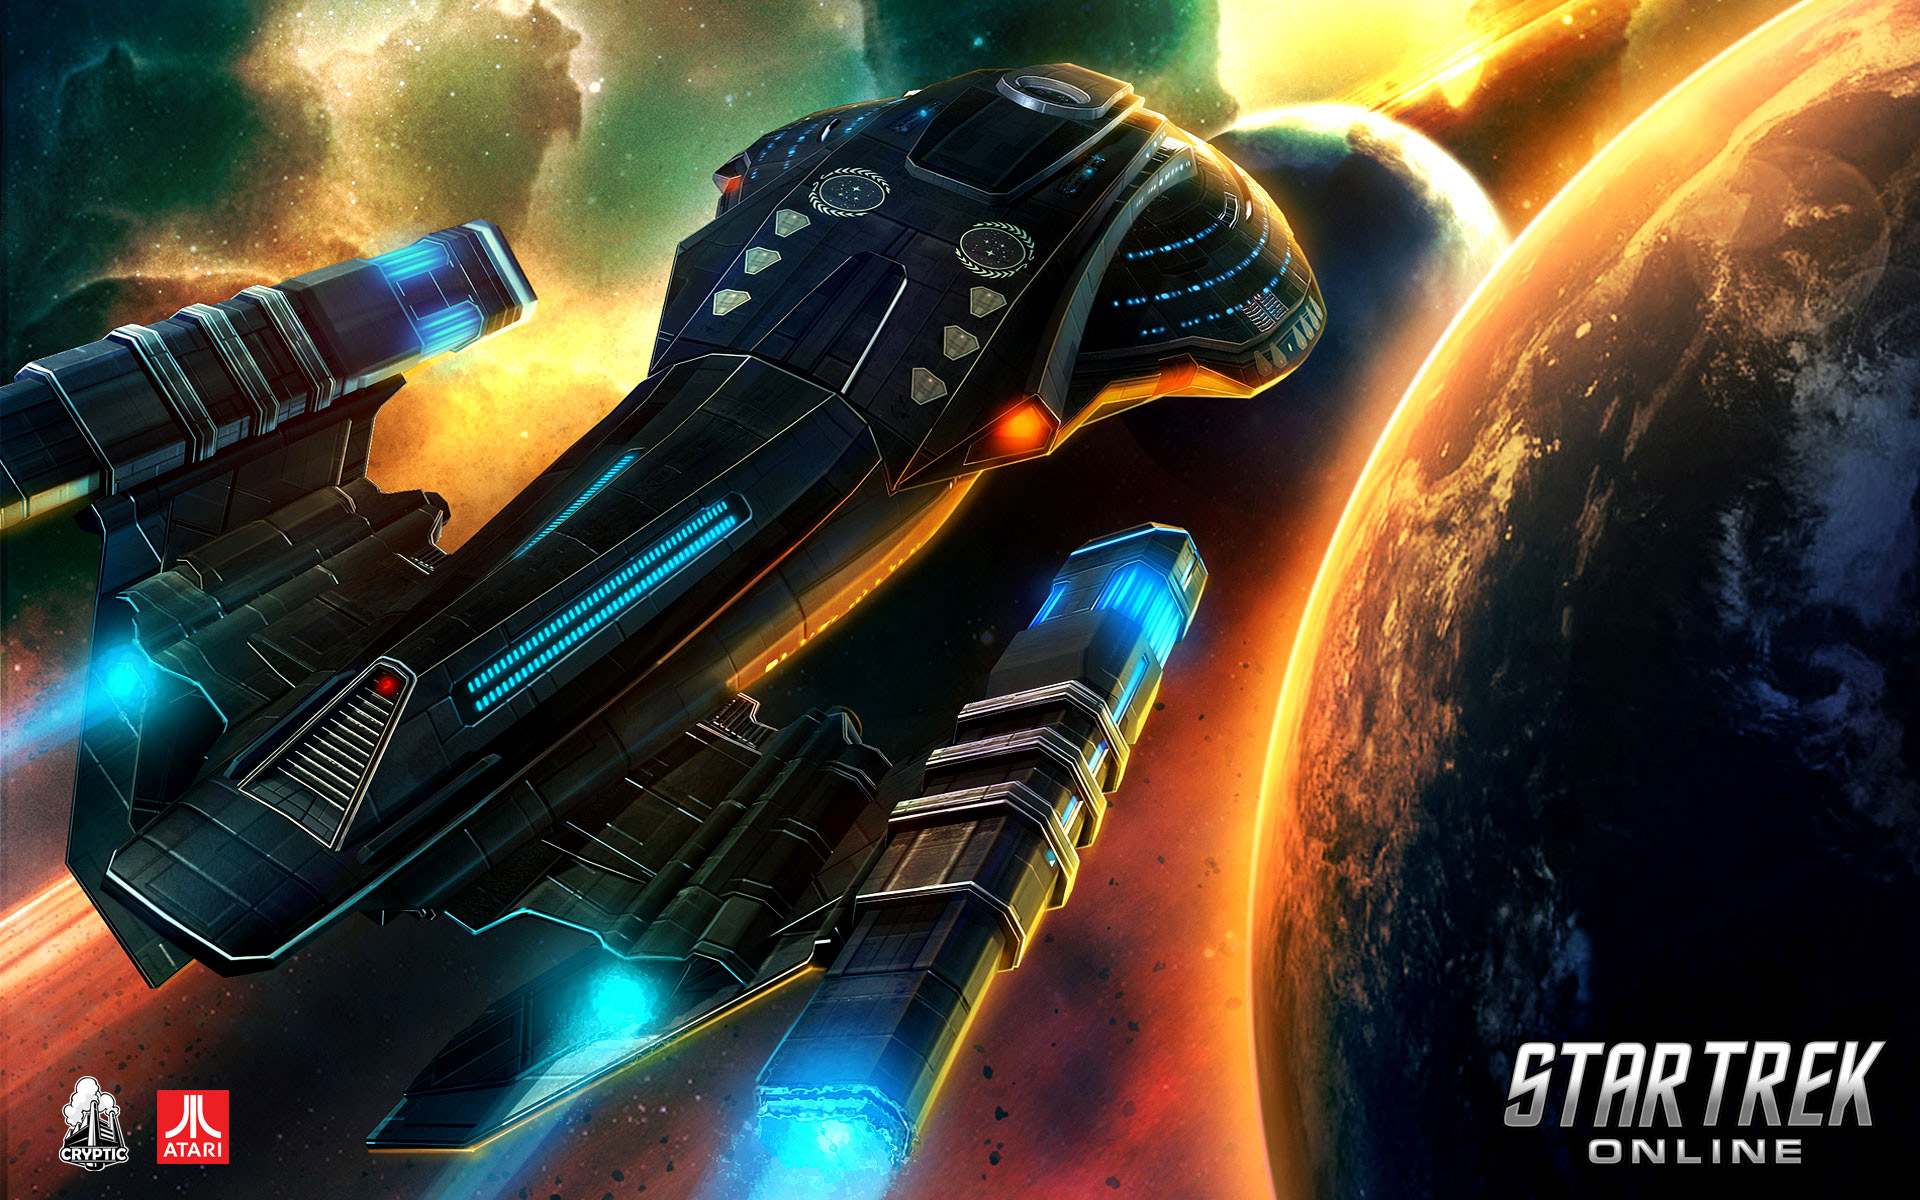 Star Trek Online Game Wallpapers HD Wallpapers 1920x1200